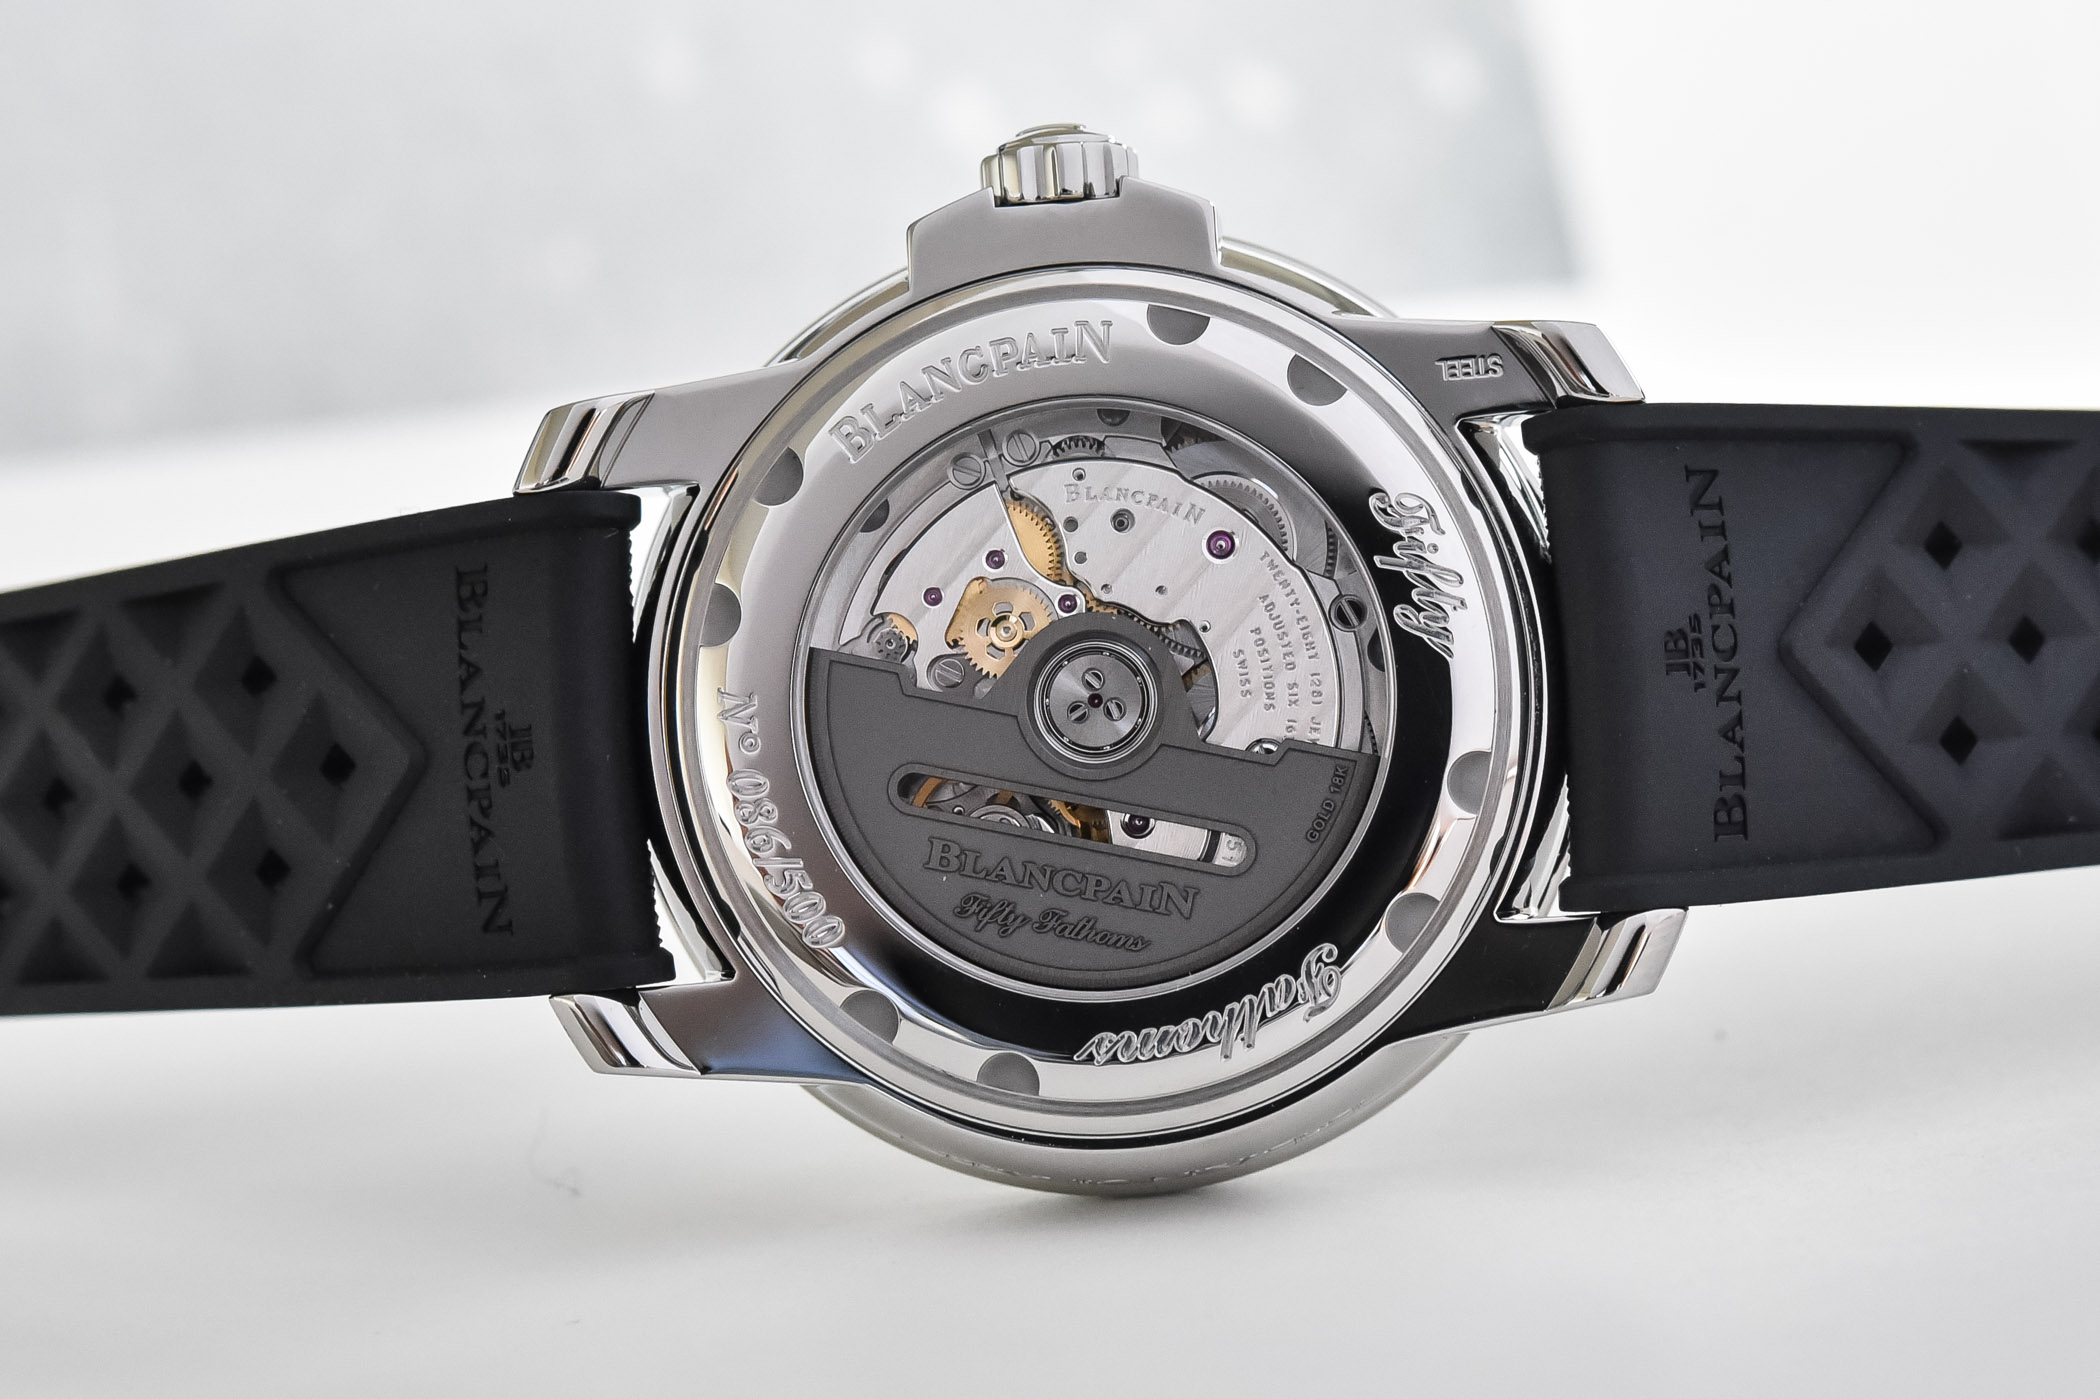 2021 Blancpain Tribute to Fifty Fathoms No Rad Limited Edition - 5008D-1130-B64A